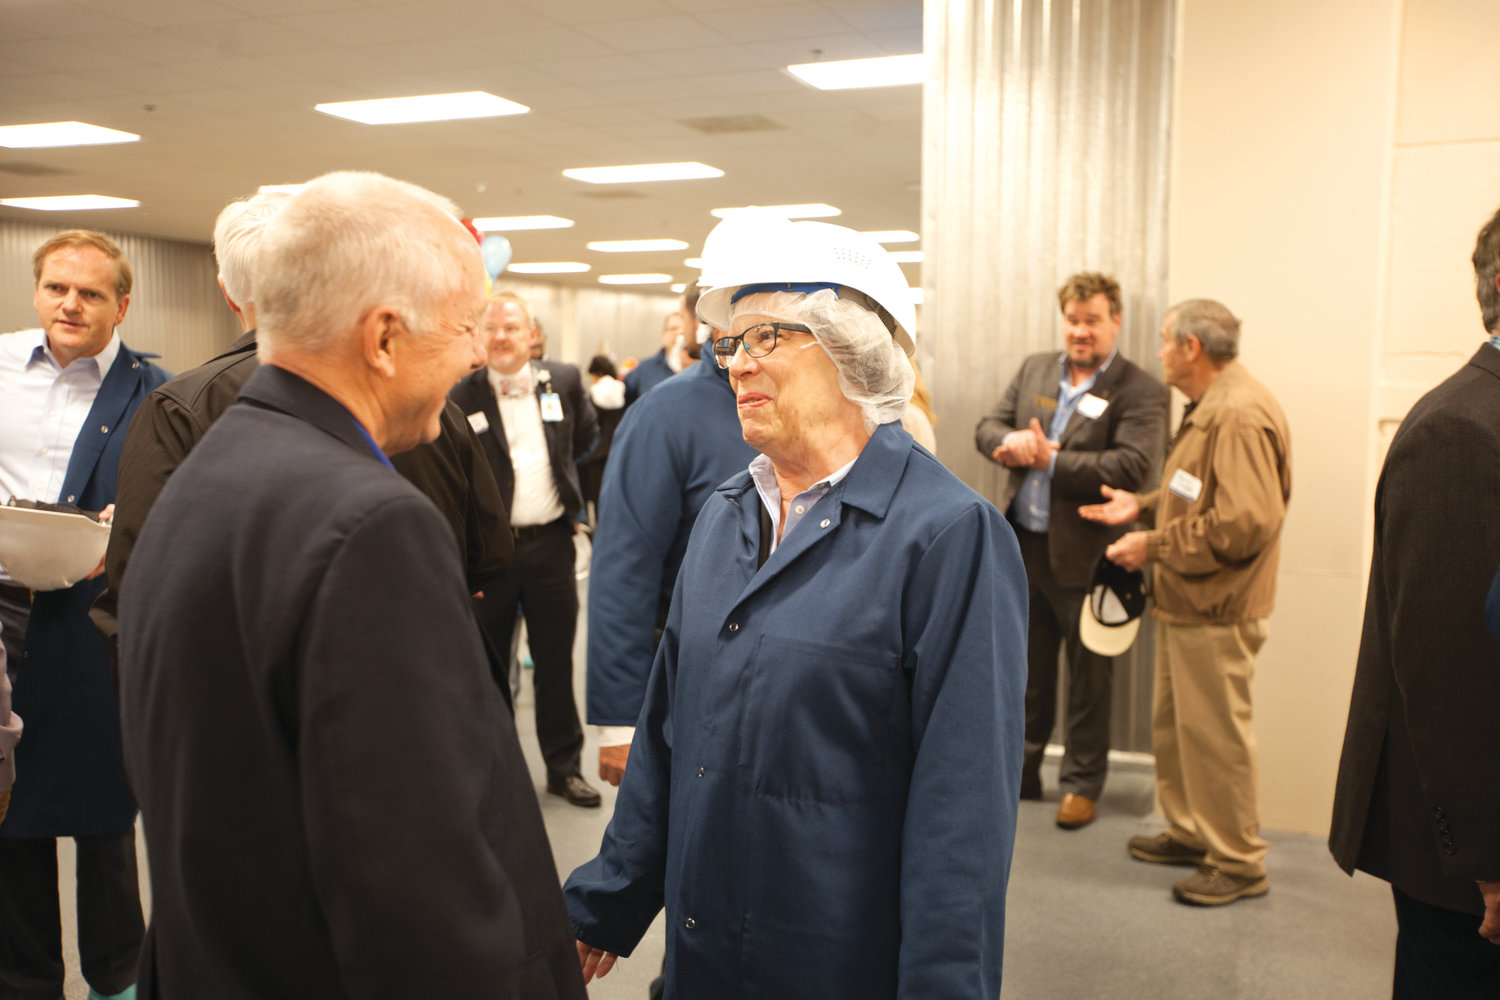 Linda Harris and Bob Kenney shared a few moments during the ribbon cutting at the new Mountaire plant in Siler City on April 16.